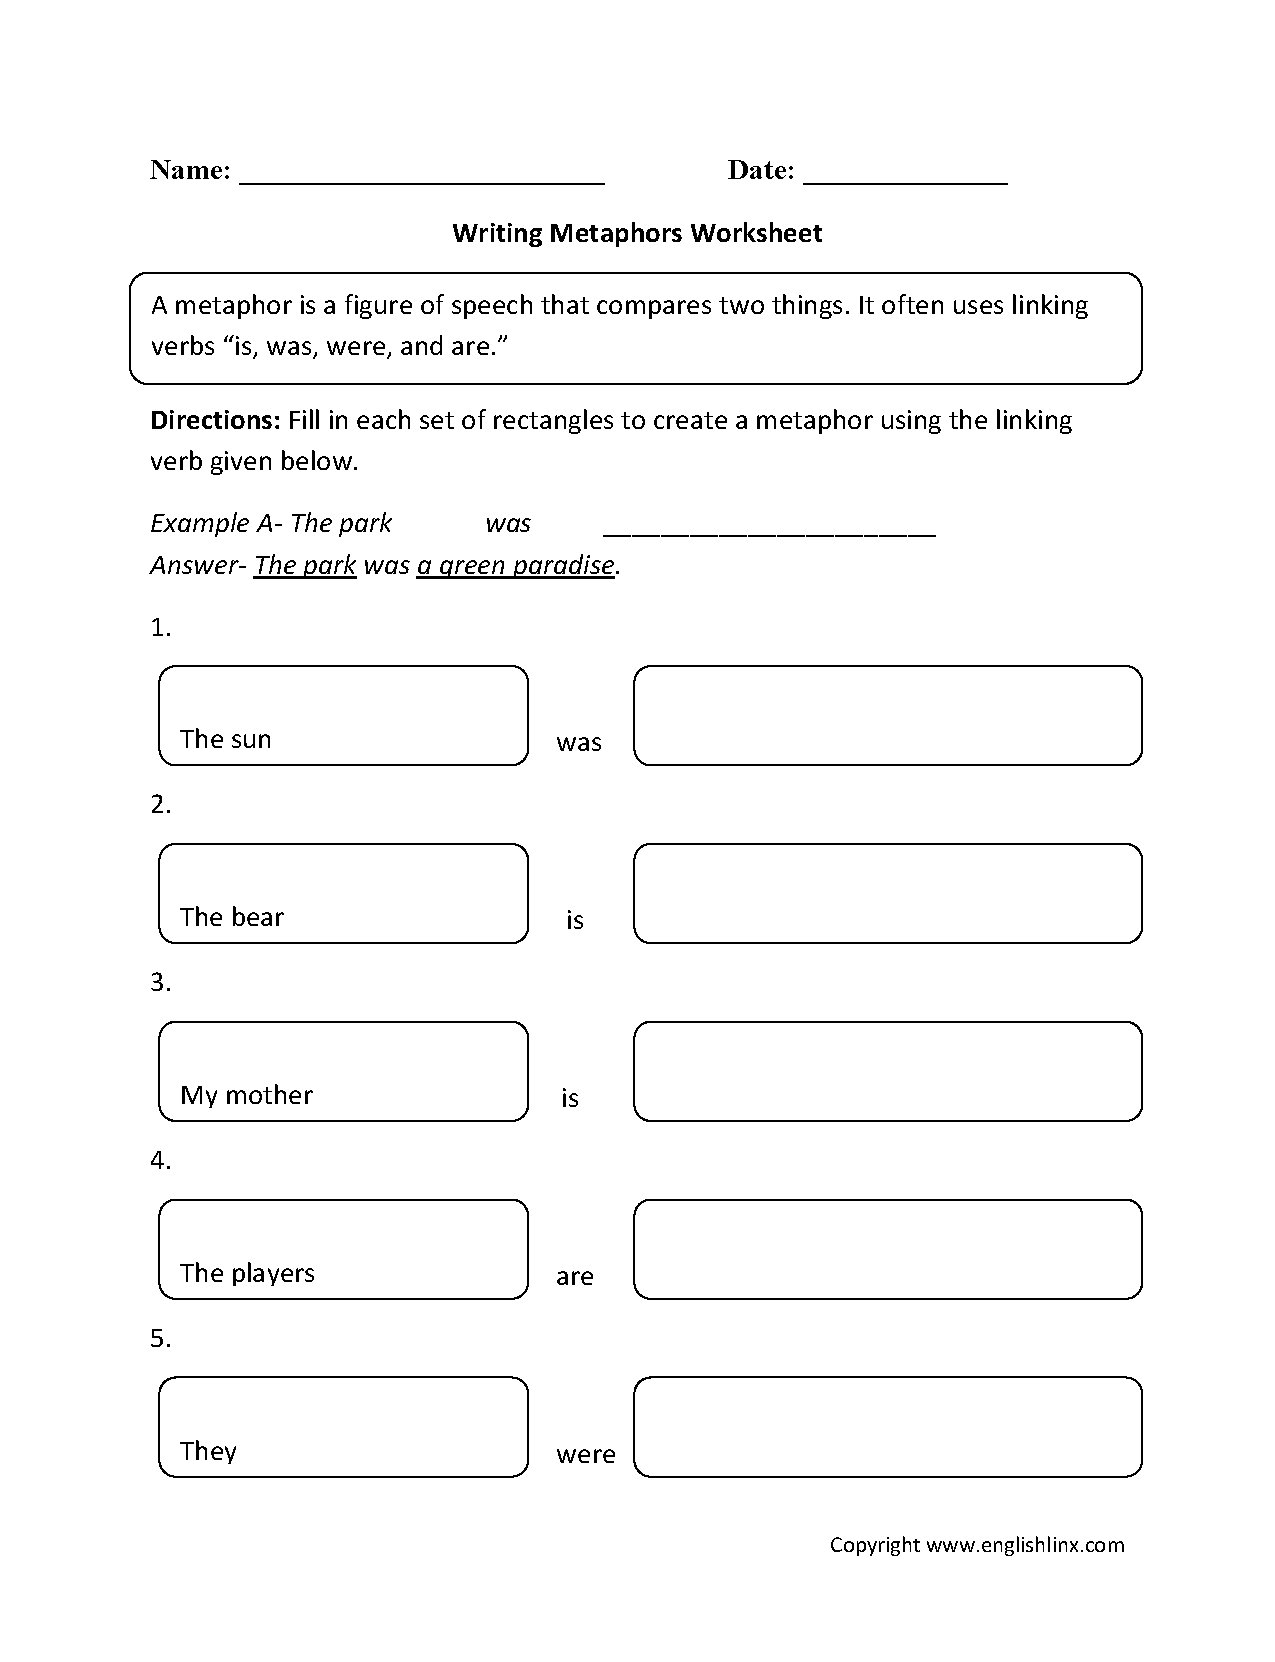 medium resolution of Englishlinx.com   Metaphors Worksheets   Writing metaphors